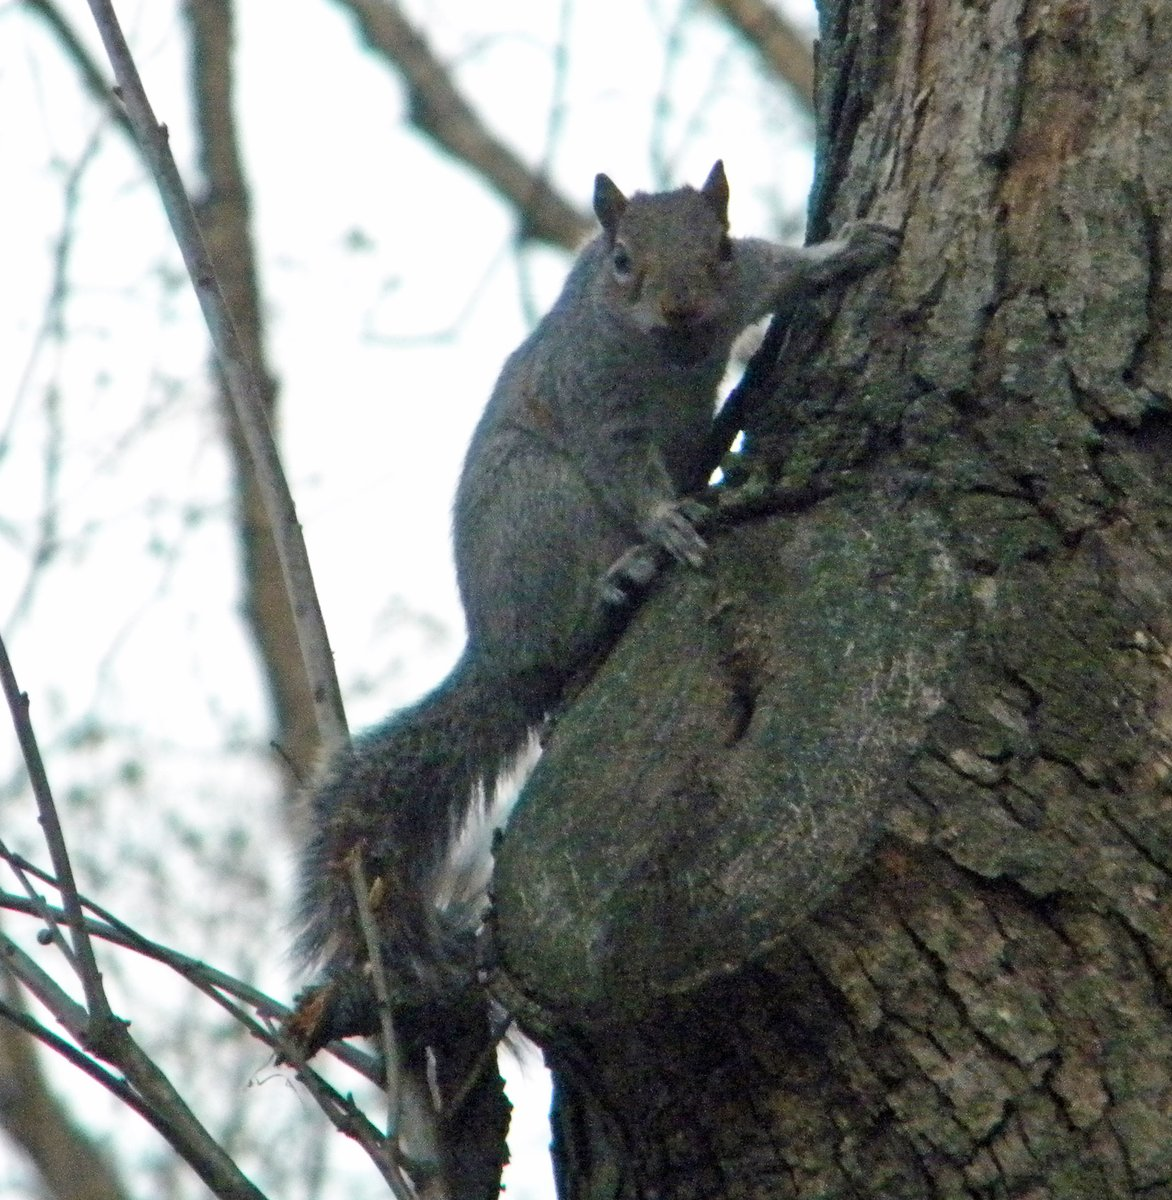 Squirrel of the day for April 3, 2020 has a bit of an attitude